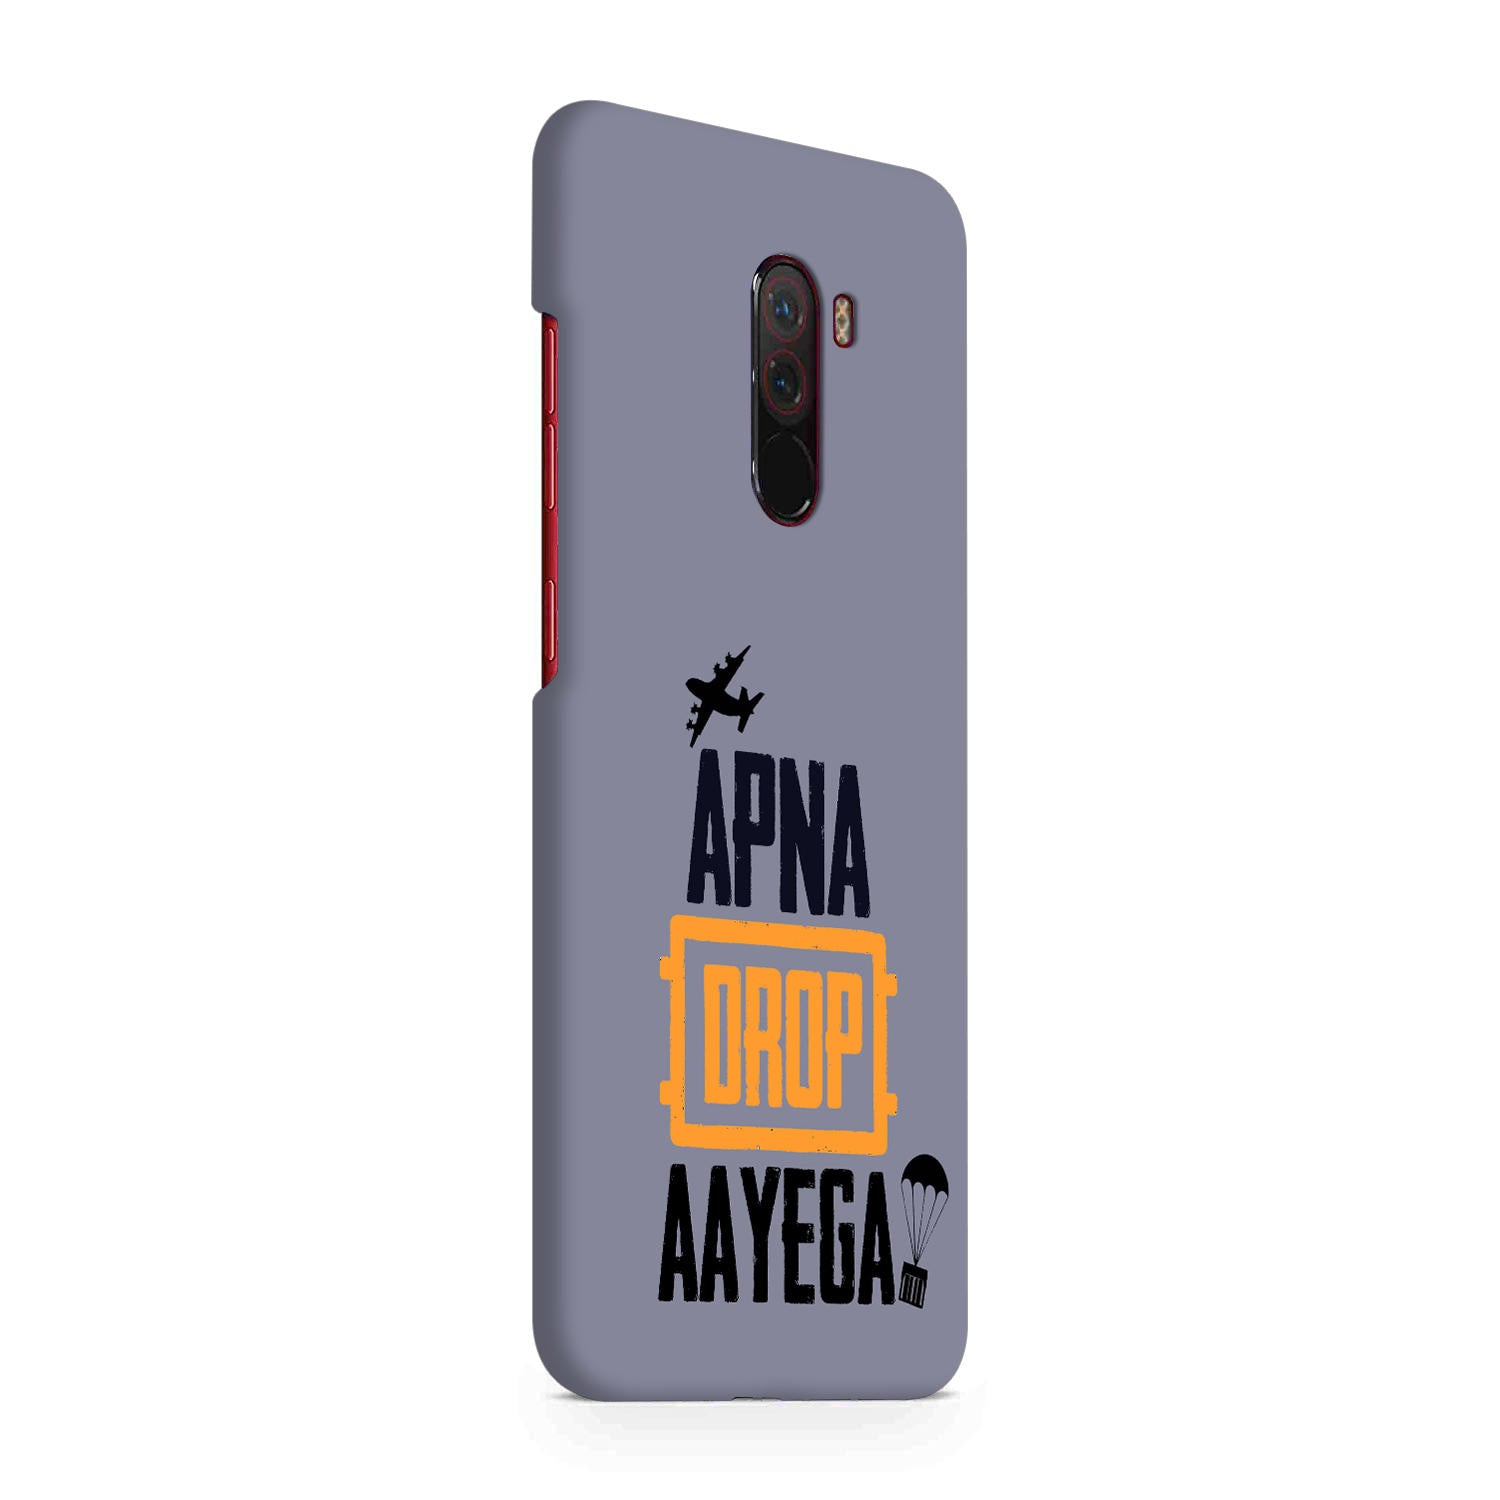 Apna Drop Aayega Game Lovers Xiaomi Poco F1 Mobile Cover Case